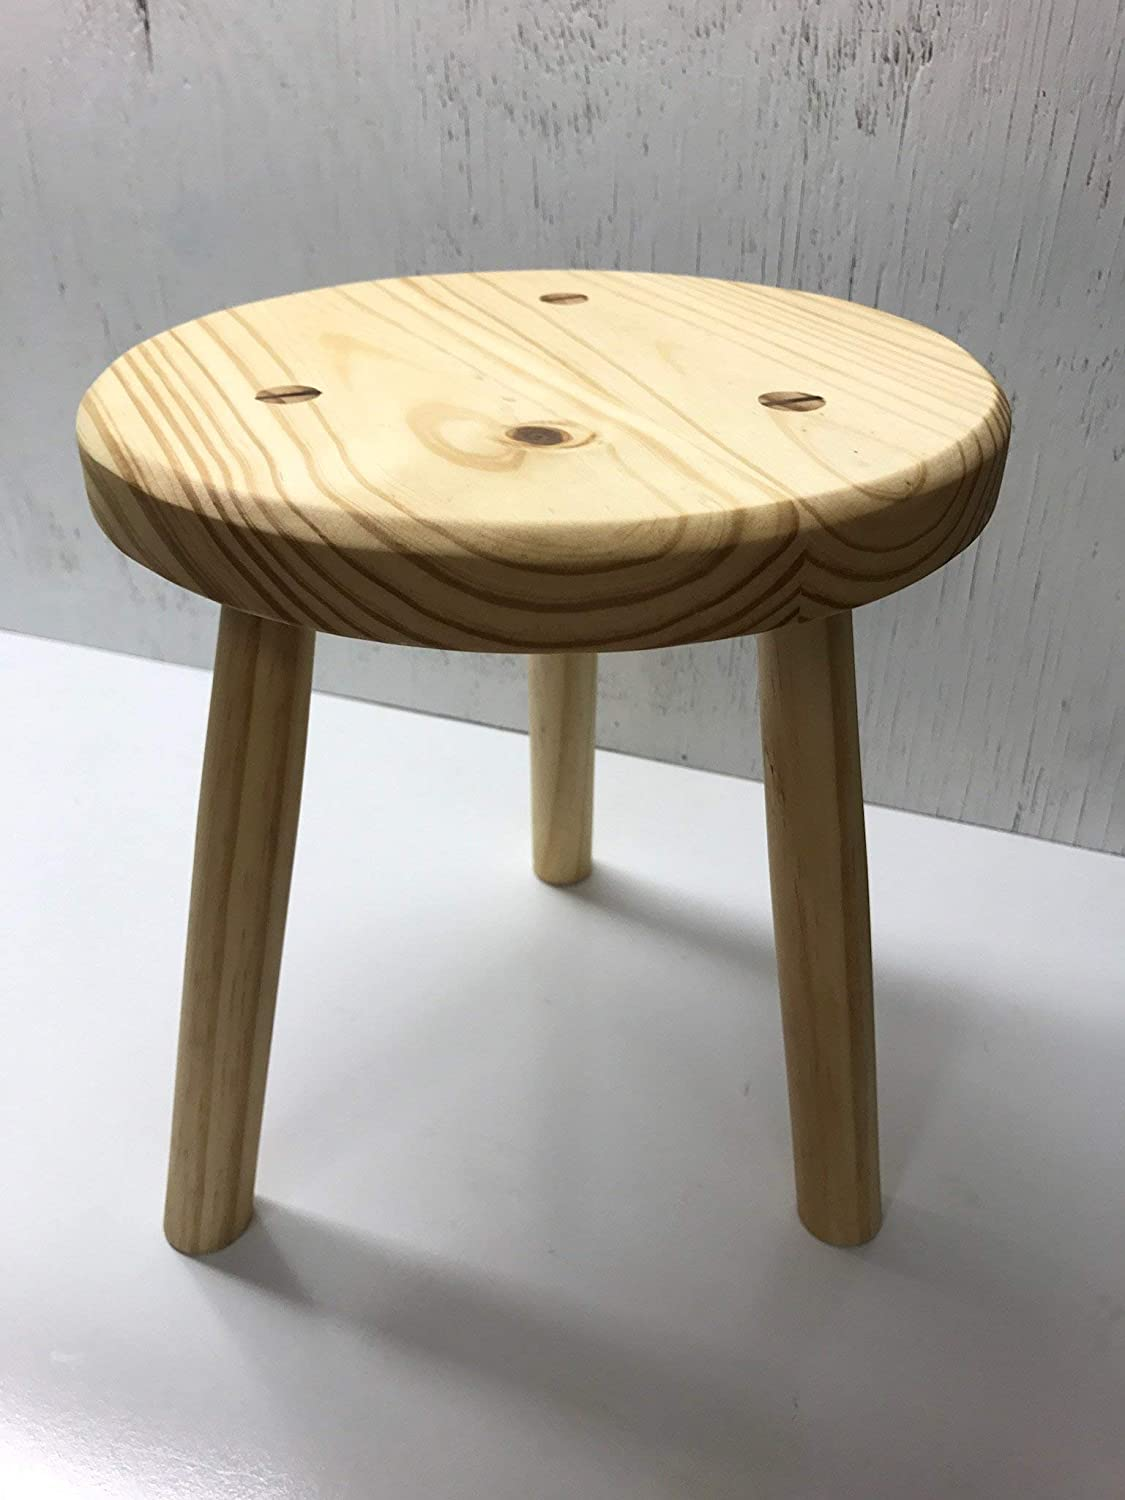 Wood Stool Sitting Stool Kitchen Stool Pine Stool Milking Stool Plant Stand 12